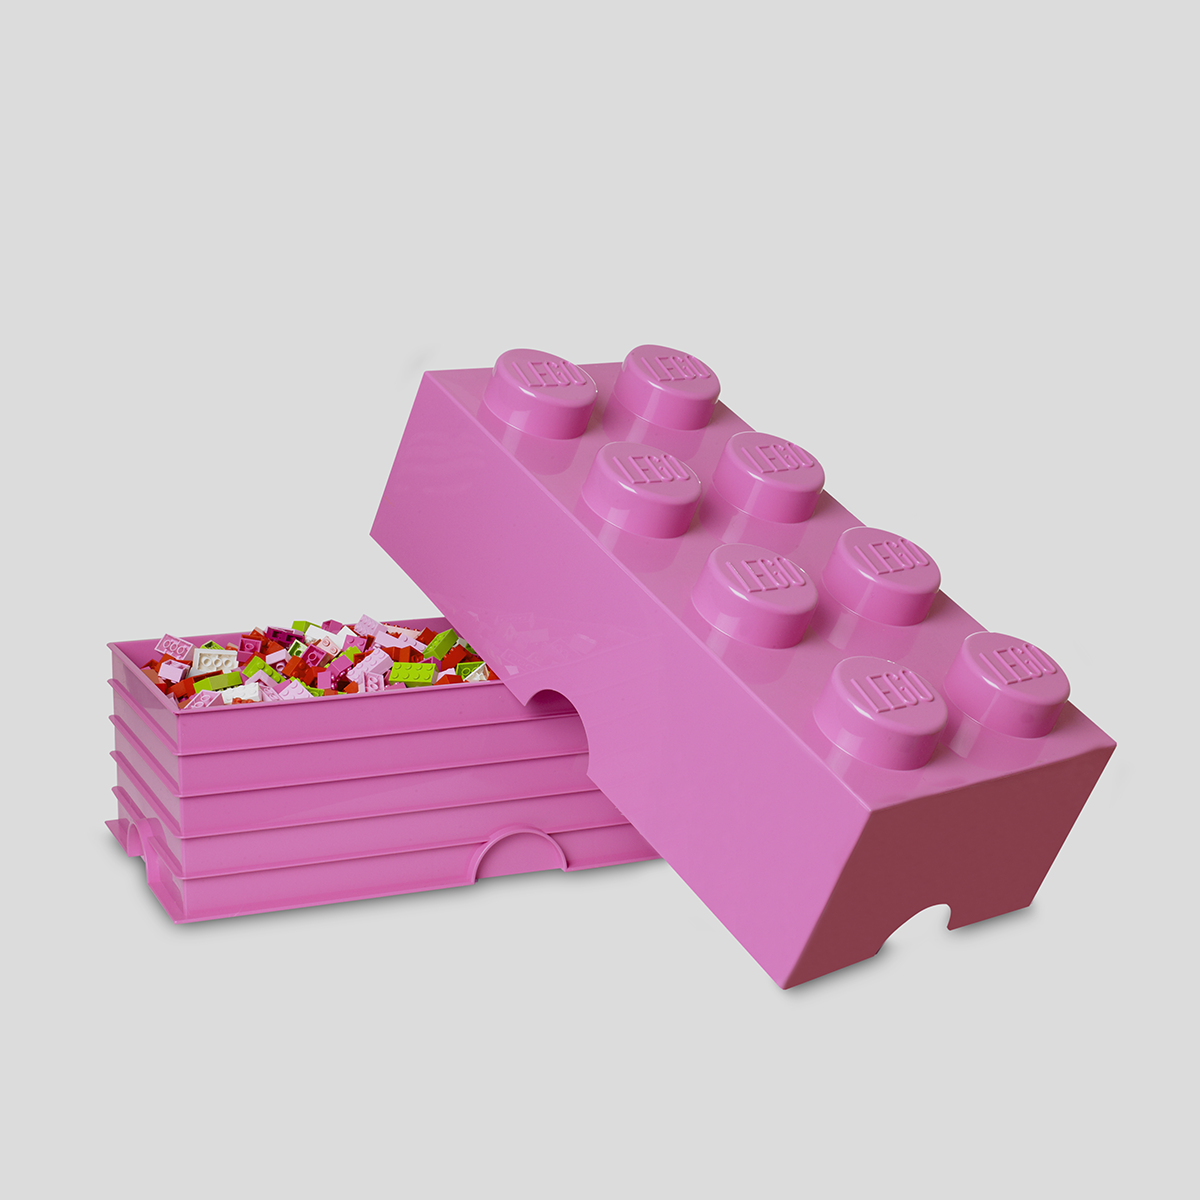 Bon 4004 LEGO Storage Brick 8_bright Purple Medium Pink_open